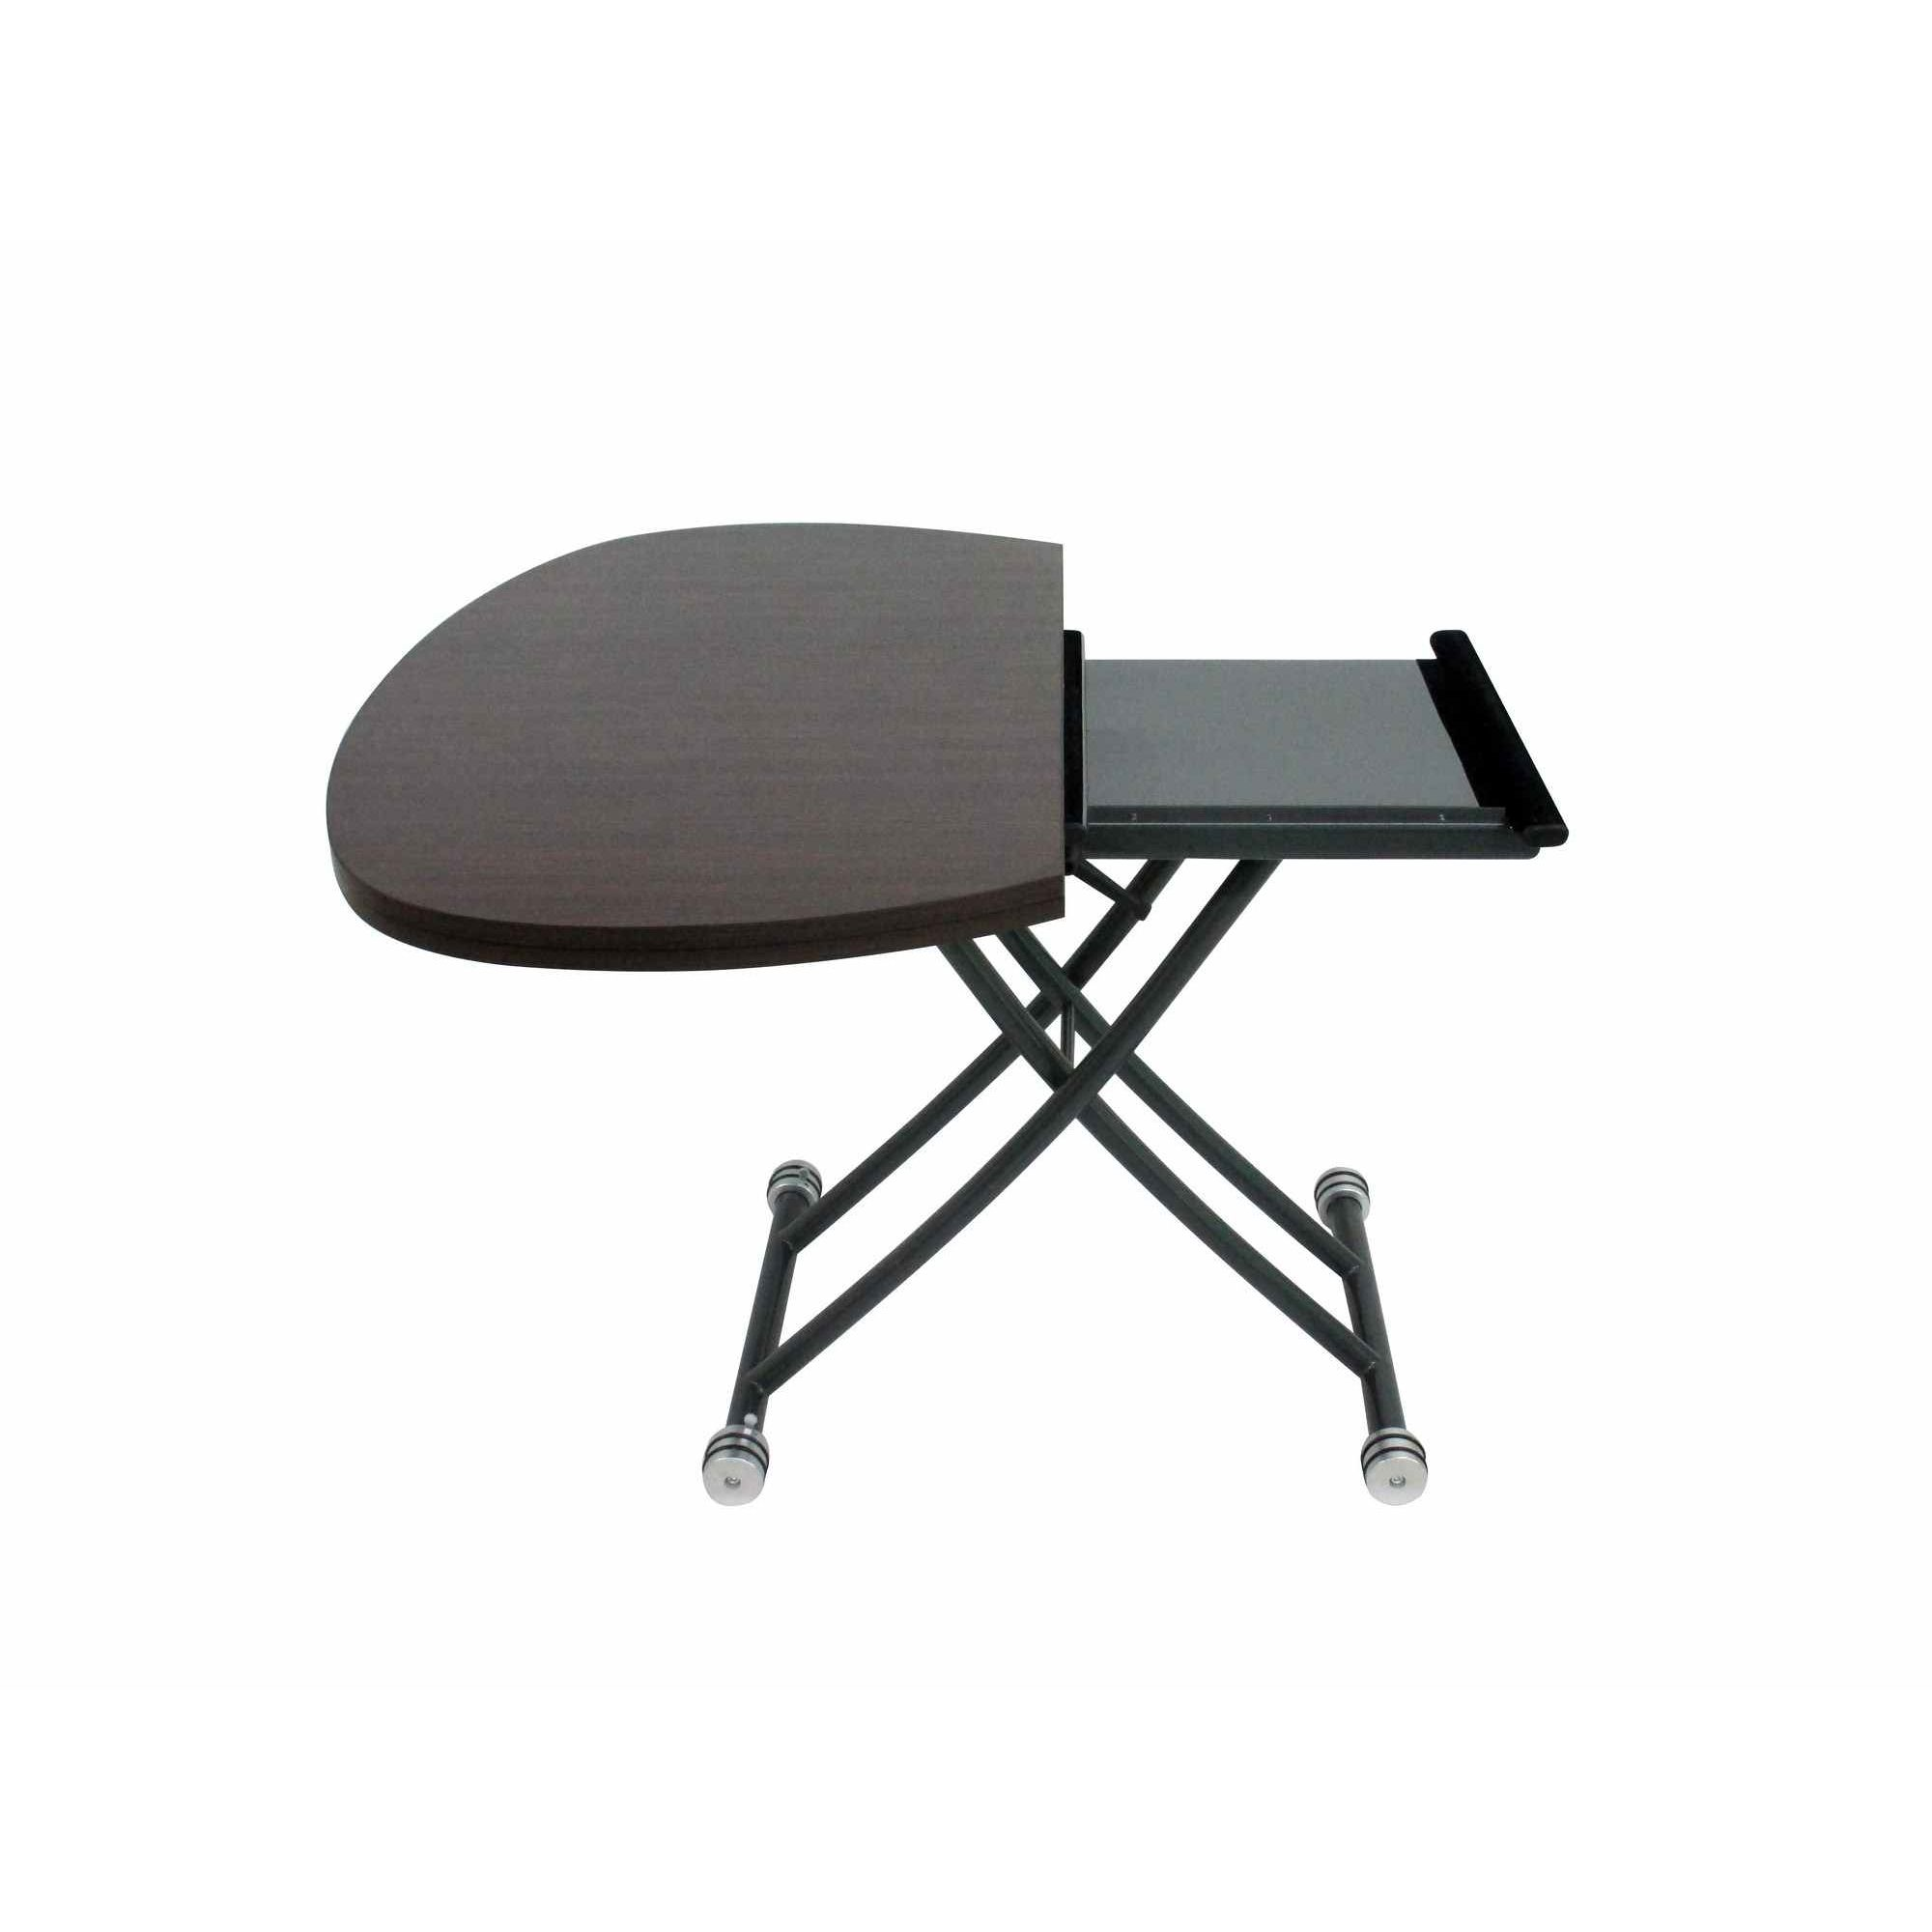 Deco in paris table basse relevable a rallonge wenge - Table basse relevable avec rallonge ...